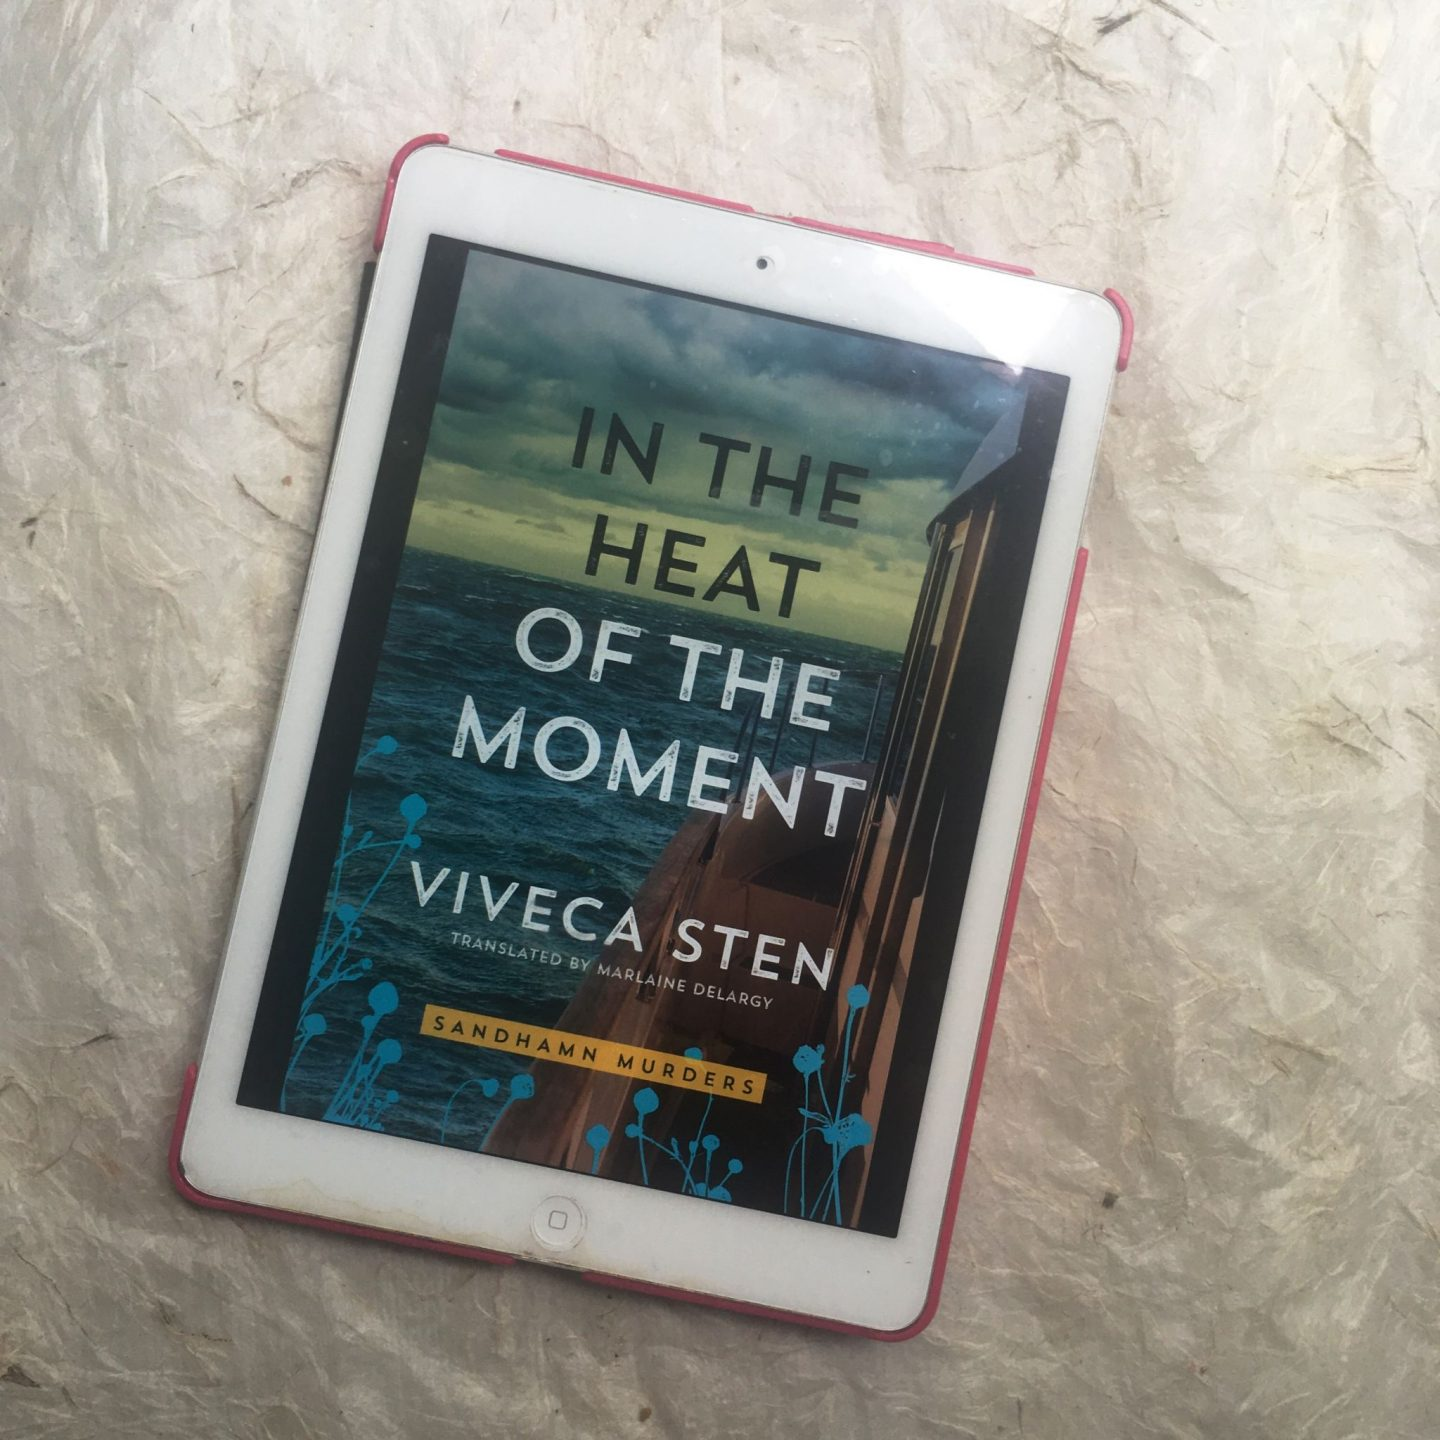 In the Heat of the Moment: my review